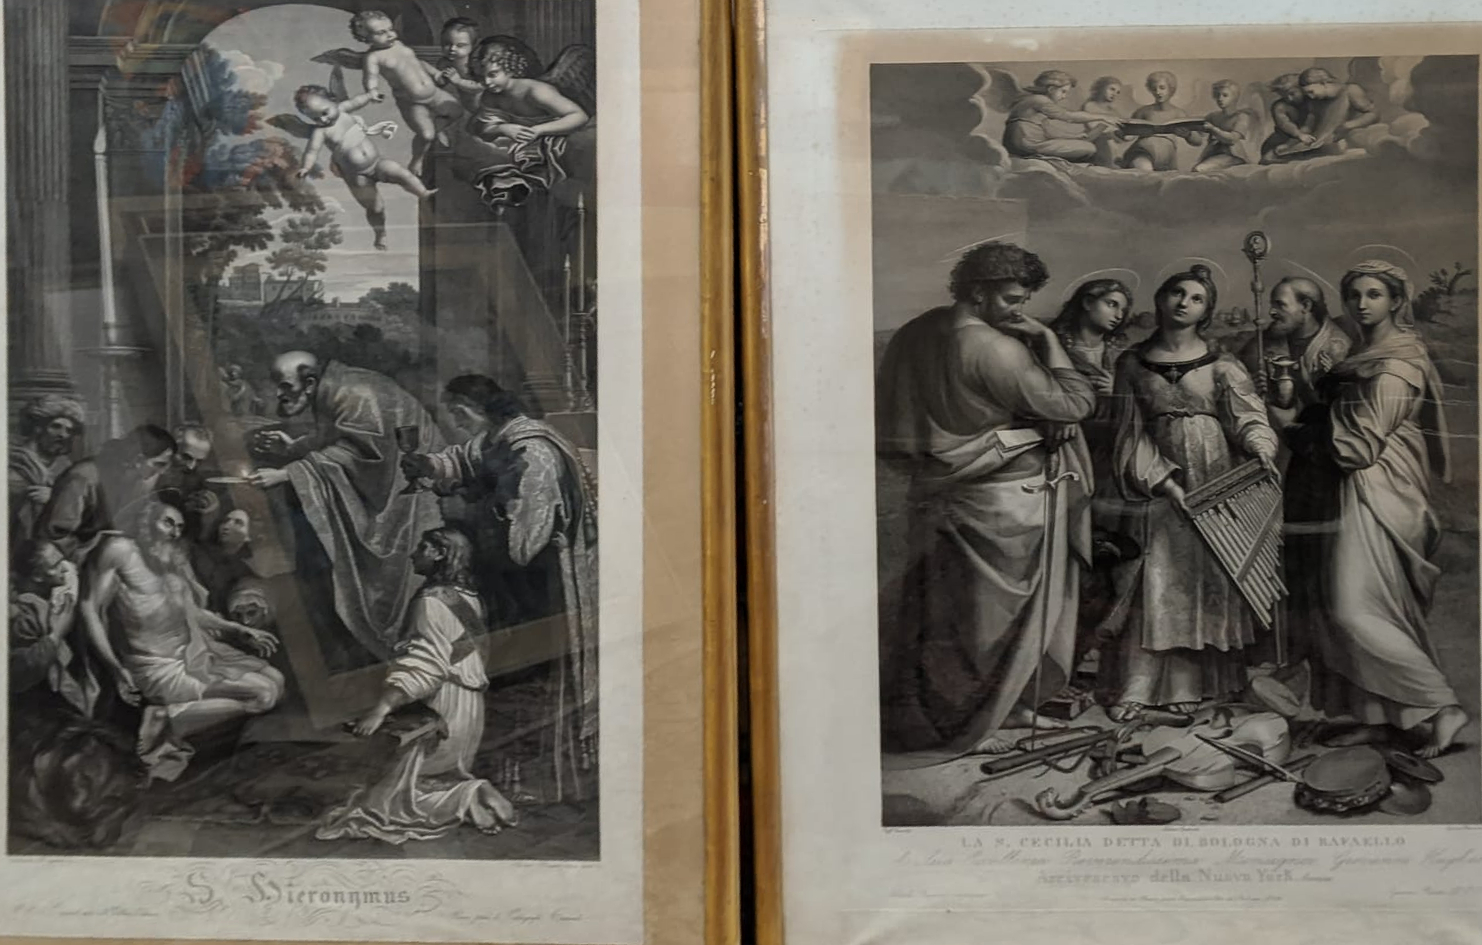 A pair of early 19th century engravings to include Ignazio Pavon (Italian, 1790-1858) and Adriano